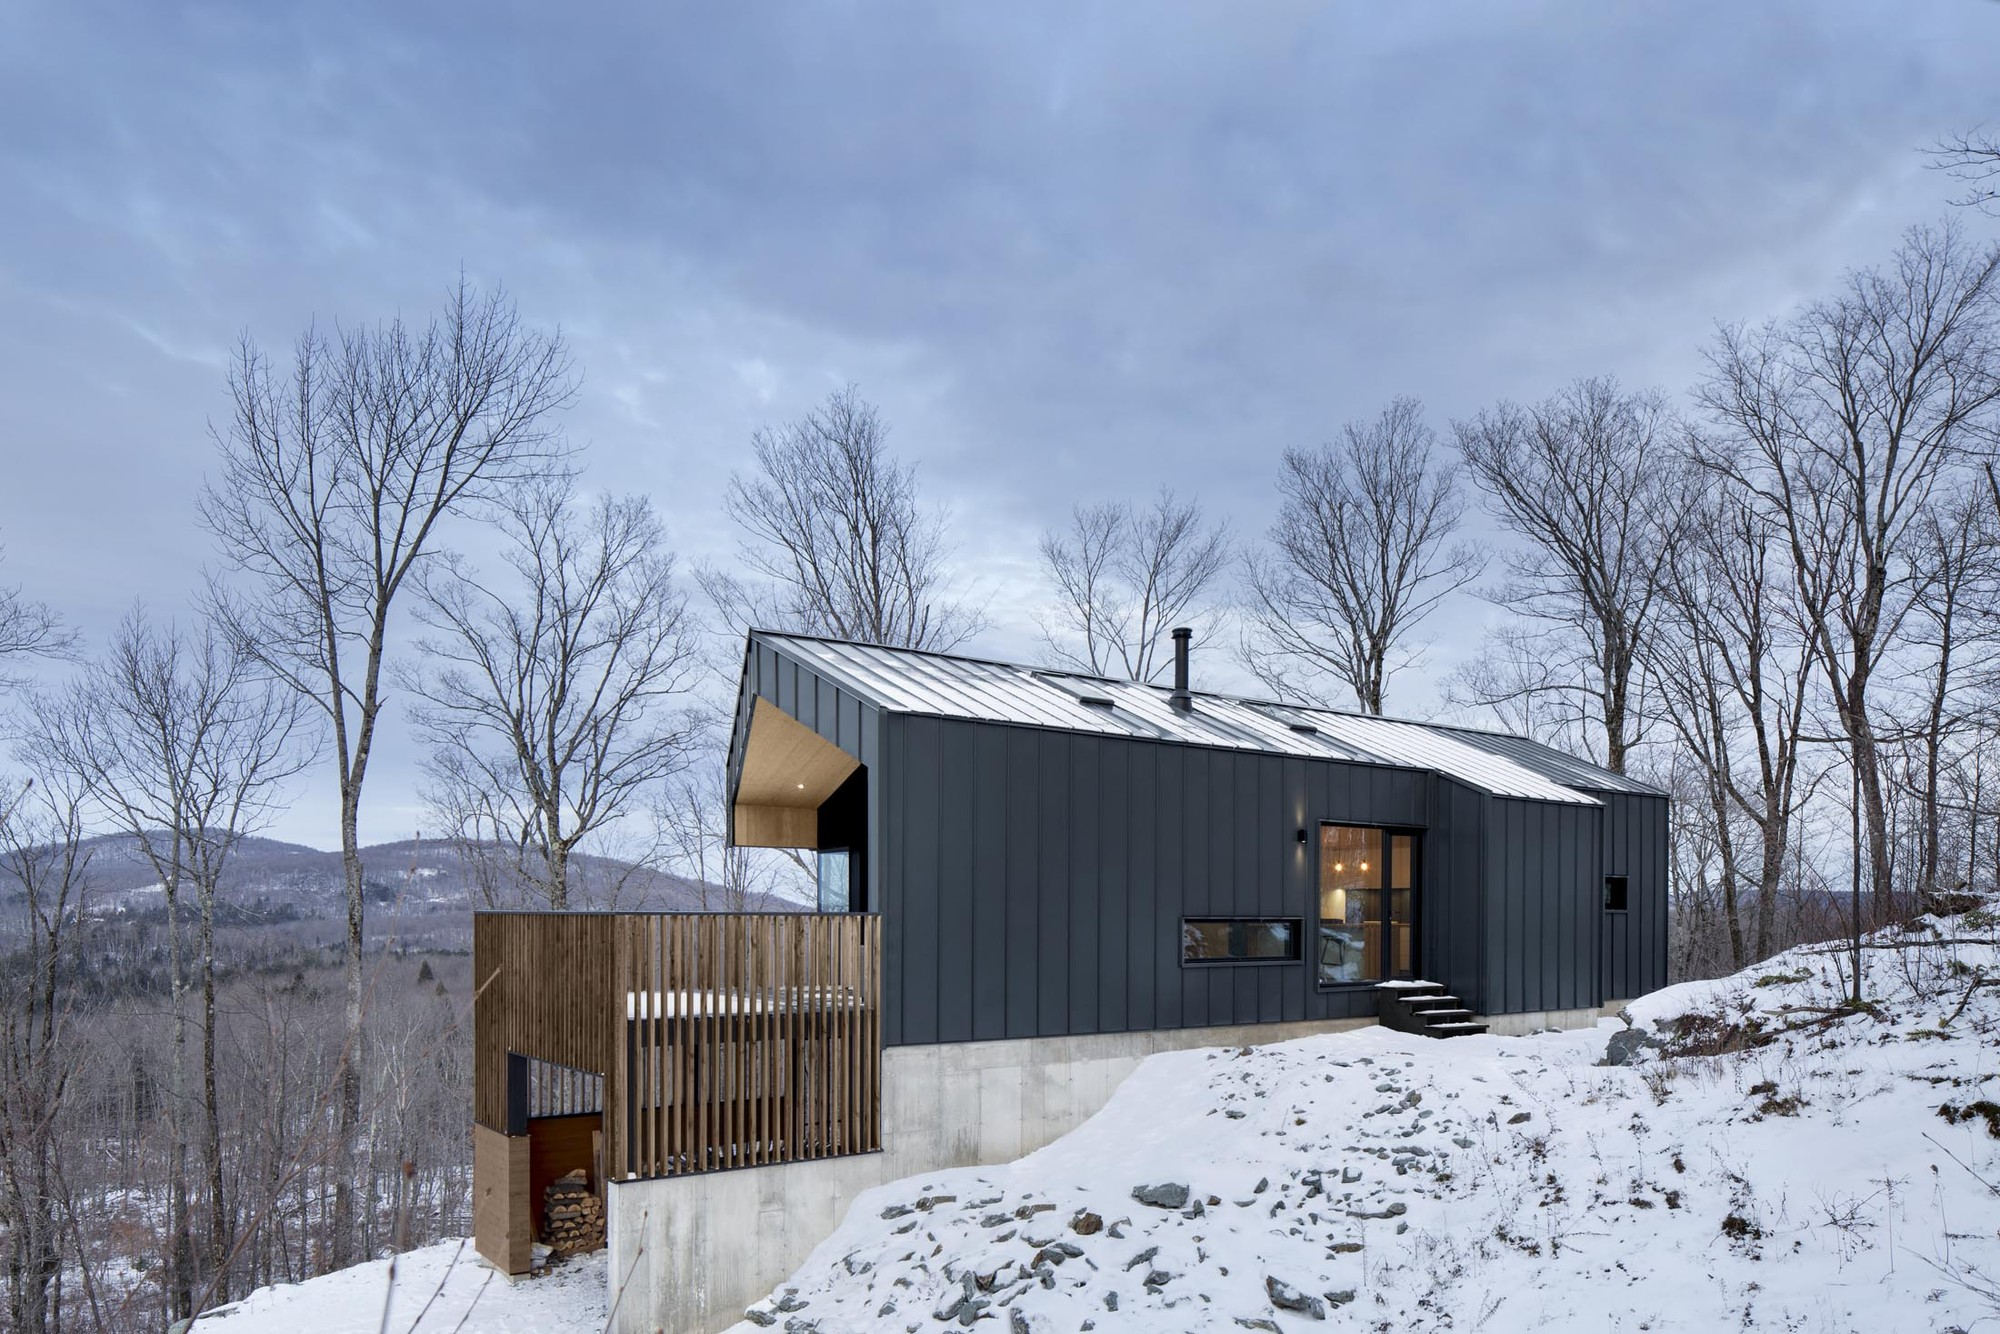 Casa Bolton / NatureHumaine, © Adrien Williams